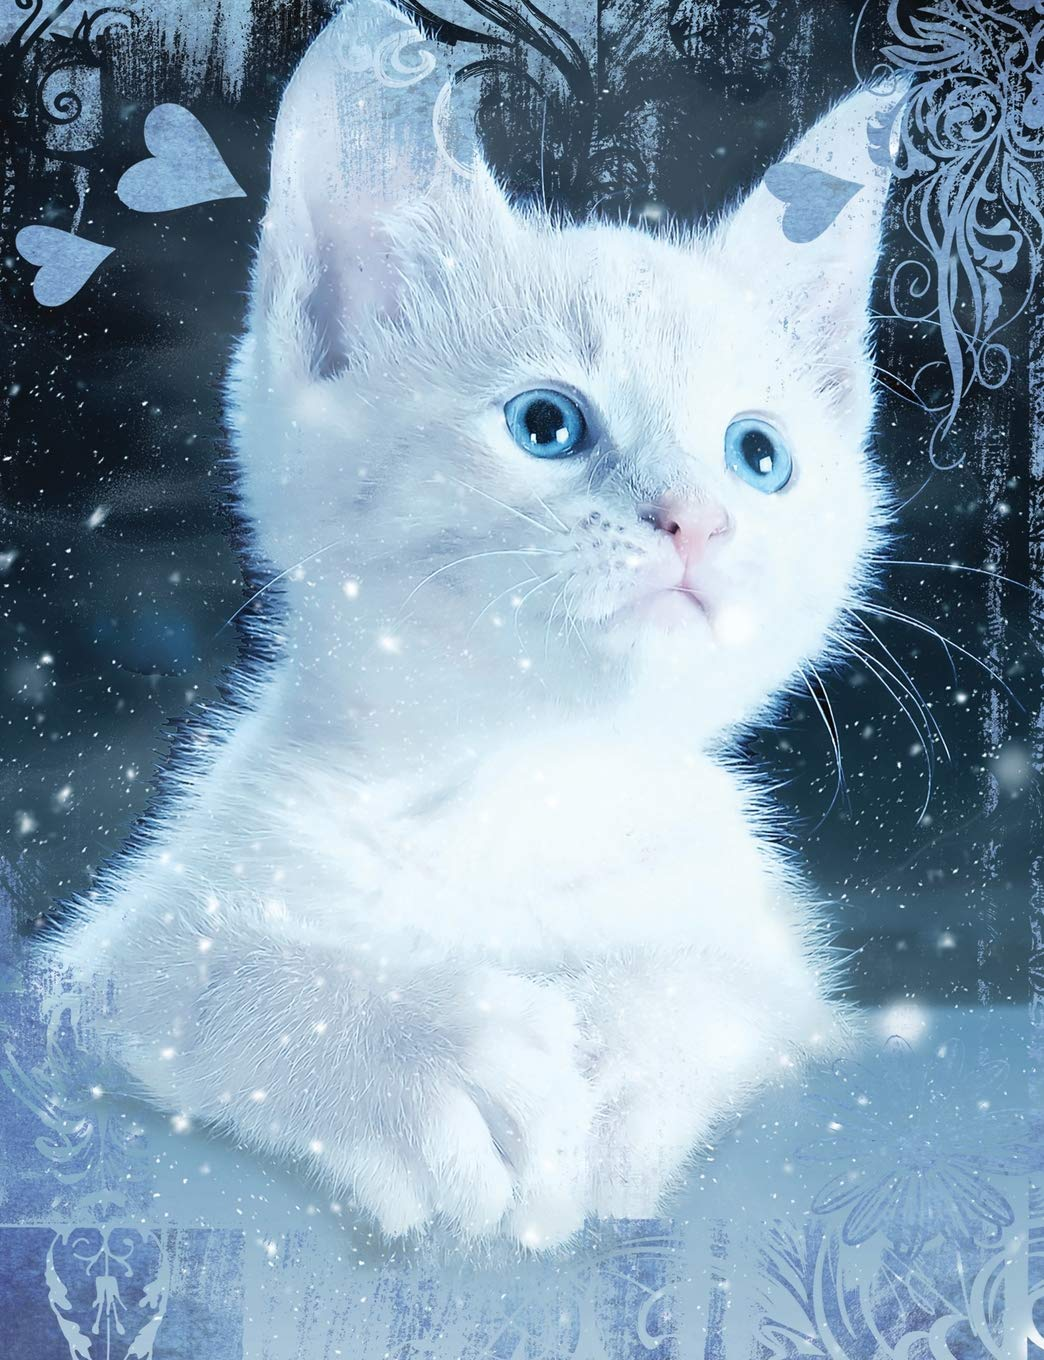 Buy White Snow Blue Eye Cat Composition Notebook Wide Ruled Lined Student Exercise Book Cute Kittens Series Book Online At Low Prices In India White Snow Blue Eye Cat Composition Notebook